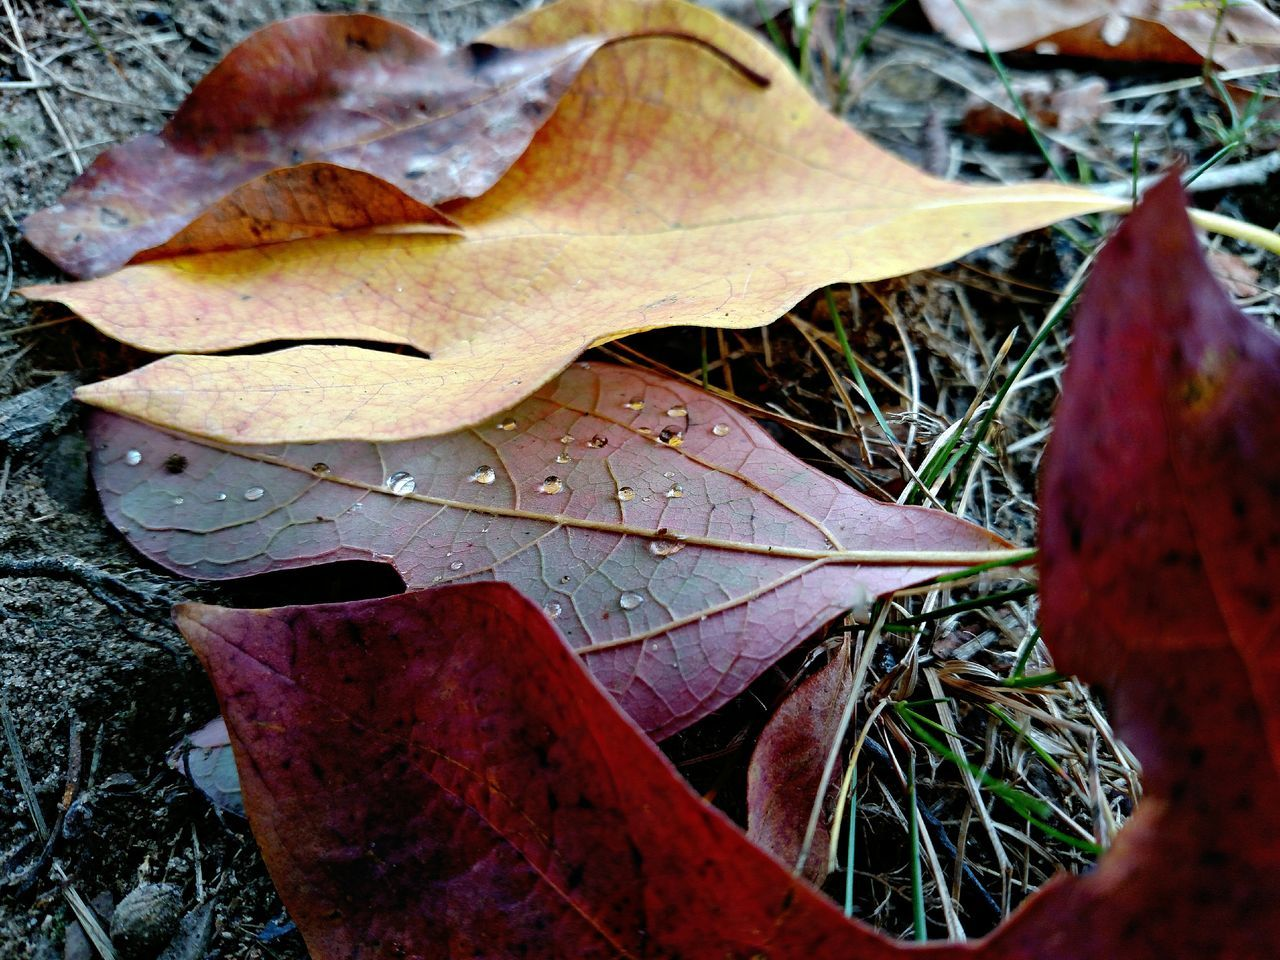 leaf, autumn, change, dry, nature, maple leaf, leaves, maple, fallen, day, outdoors, close-up, fragility, weather, beauty in nature, high angle view, no people, water